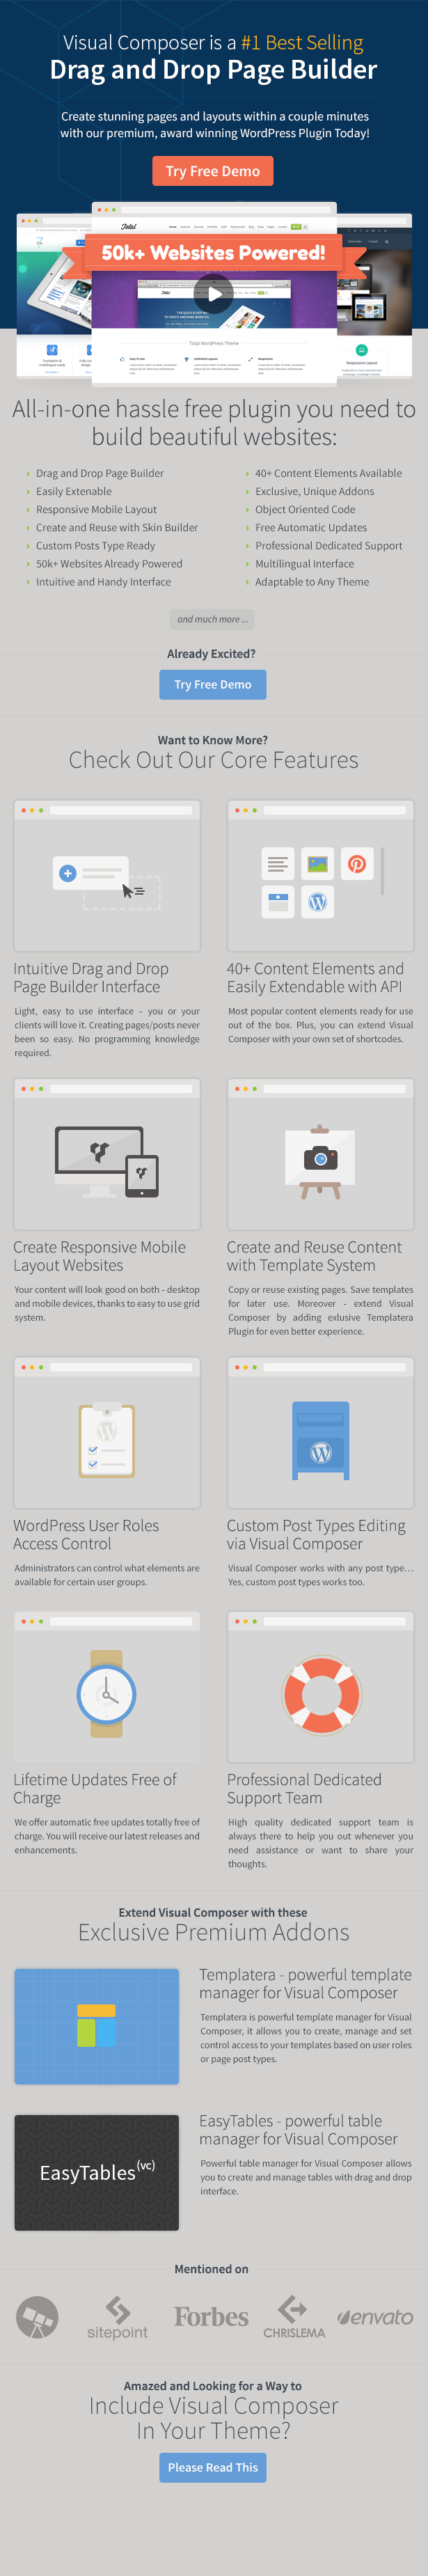 Visual Composer: Page Builder for WordPress